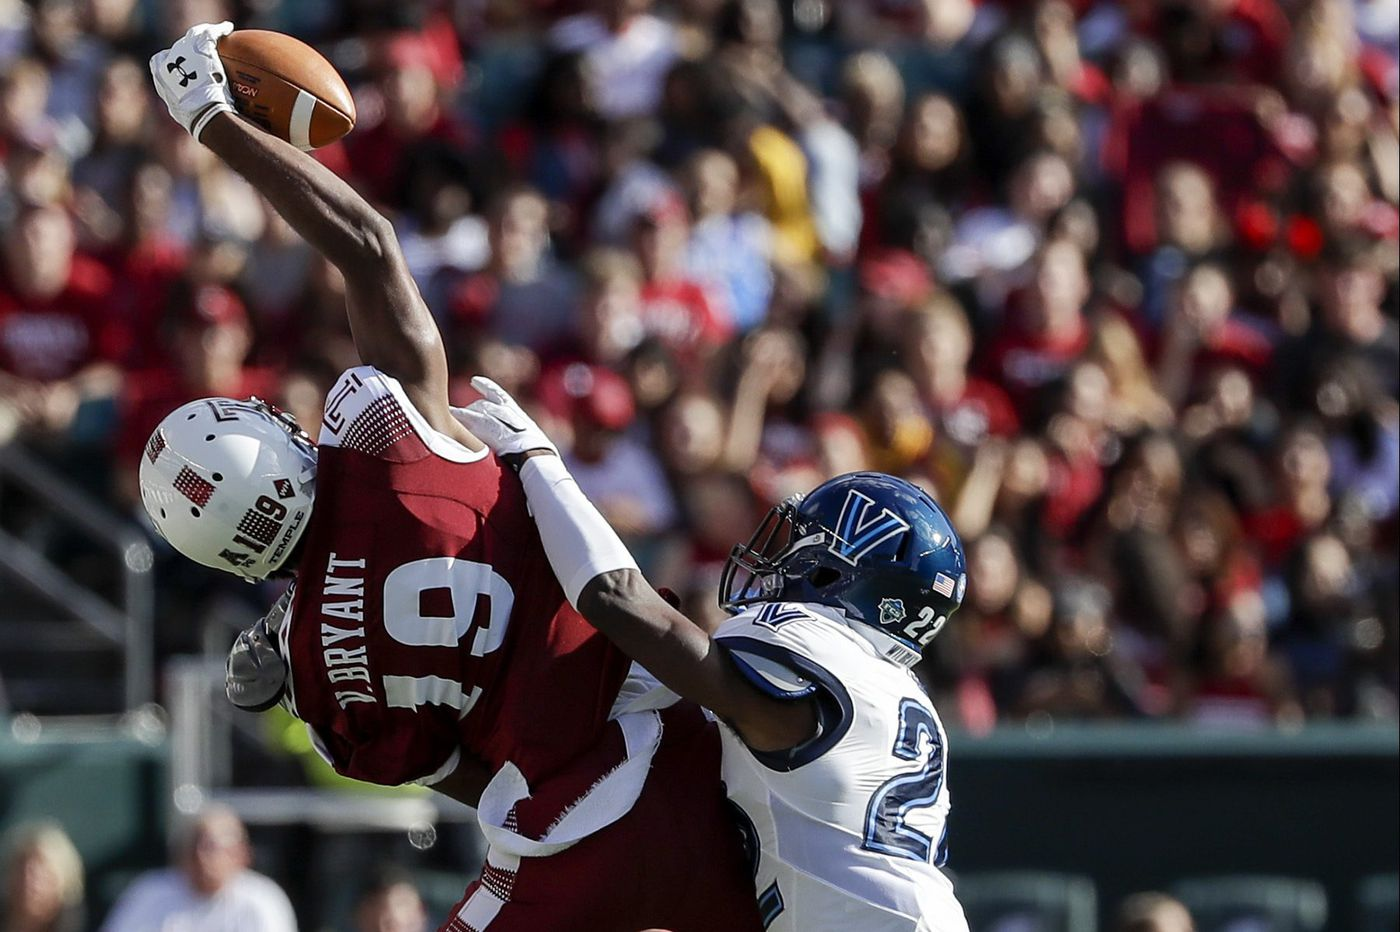 Temple-Villanova preview: Owls insist they won't overlook Wildcats this time